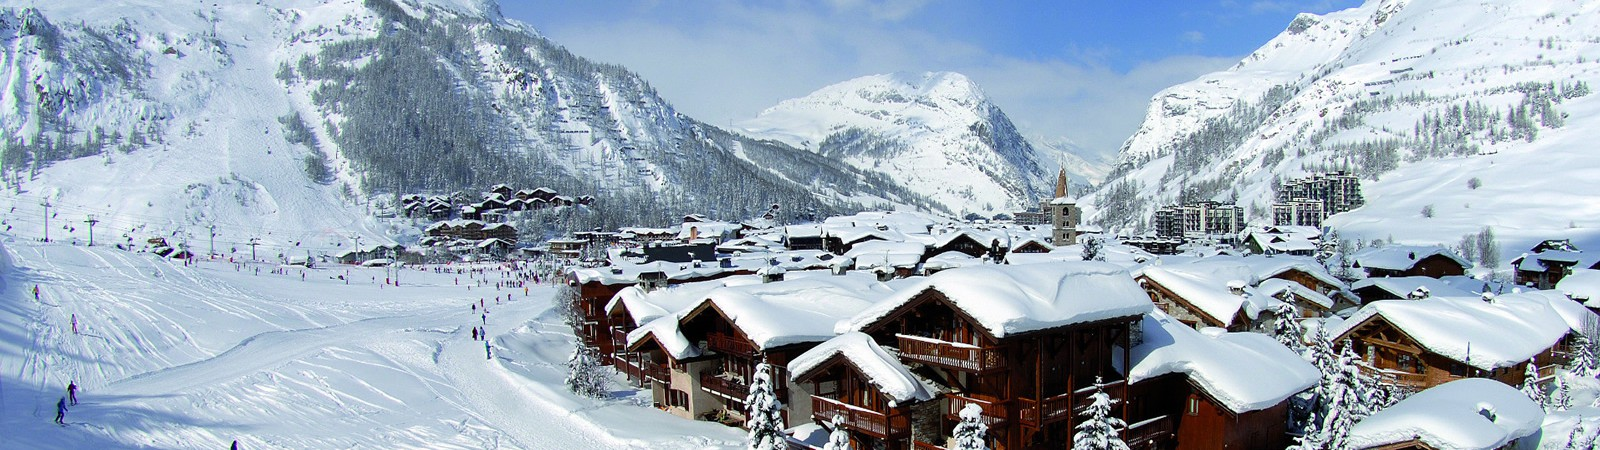 Val d'Isere dorp